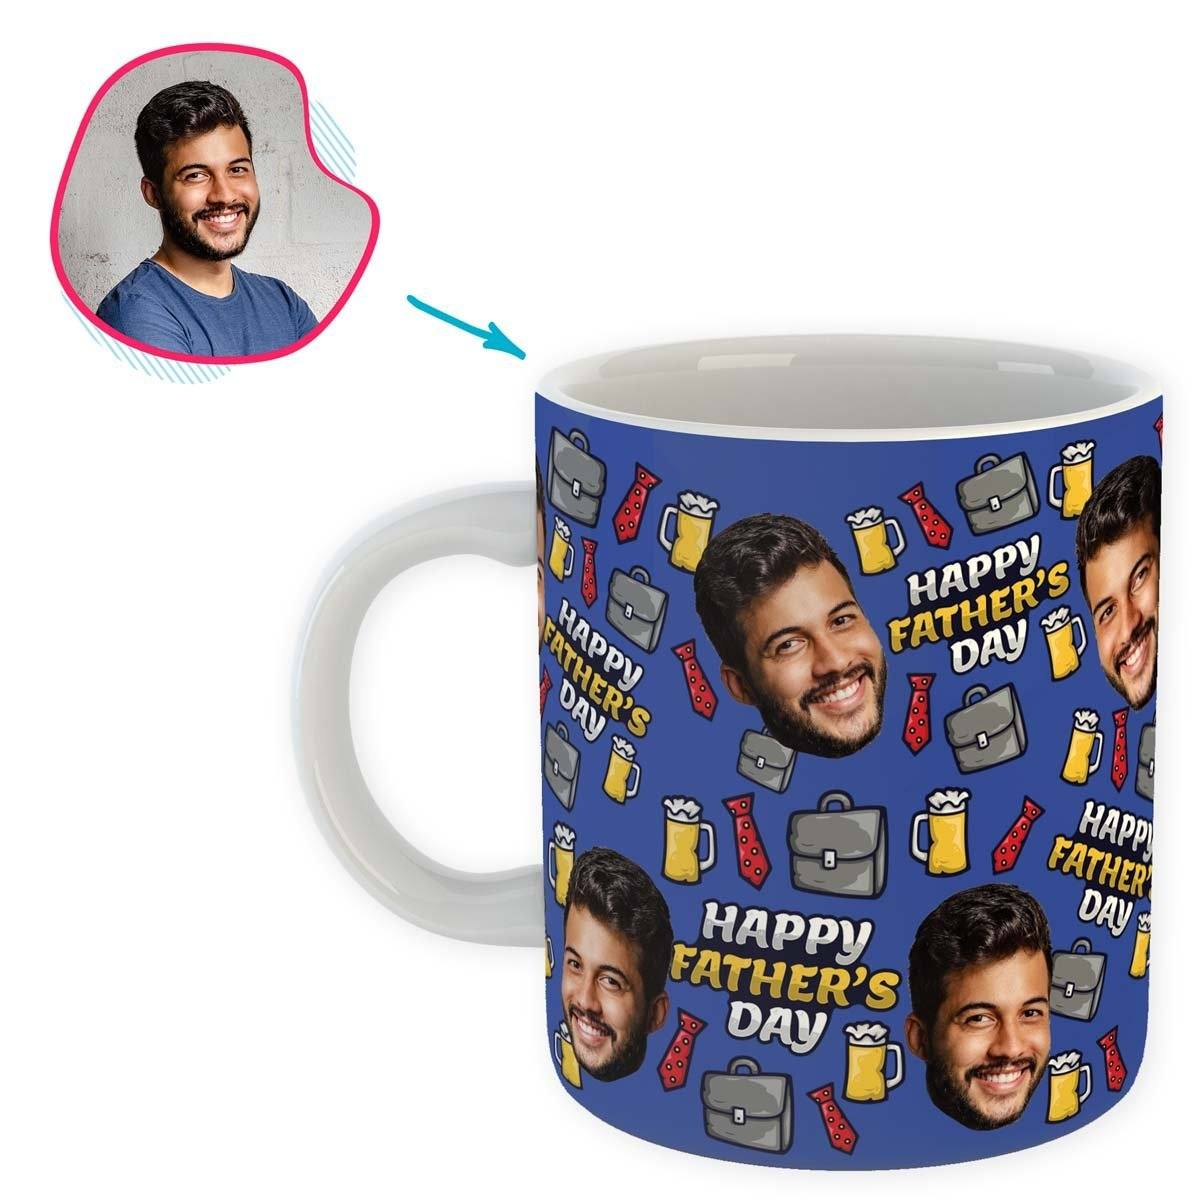 Darkblue Fathers Day personalized mug with photo of face printed on it